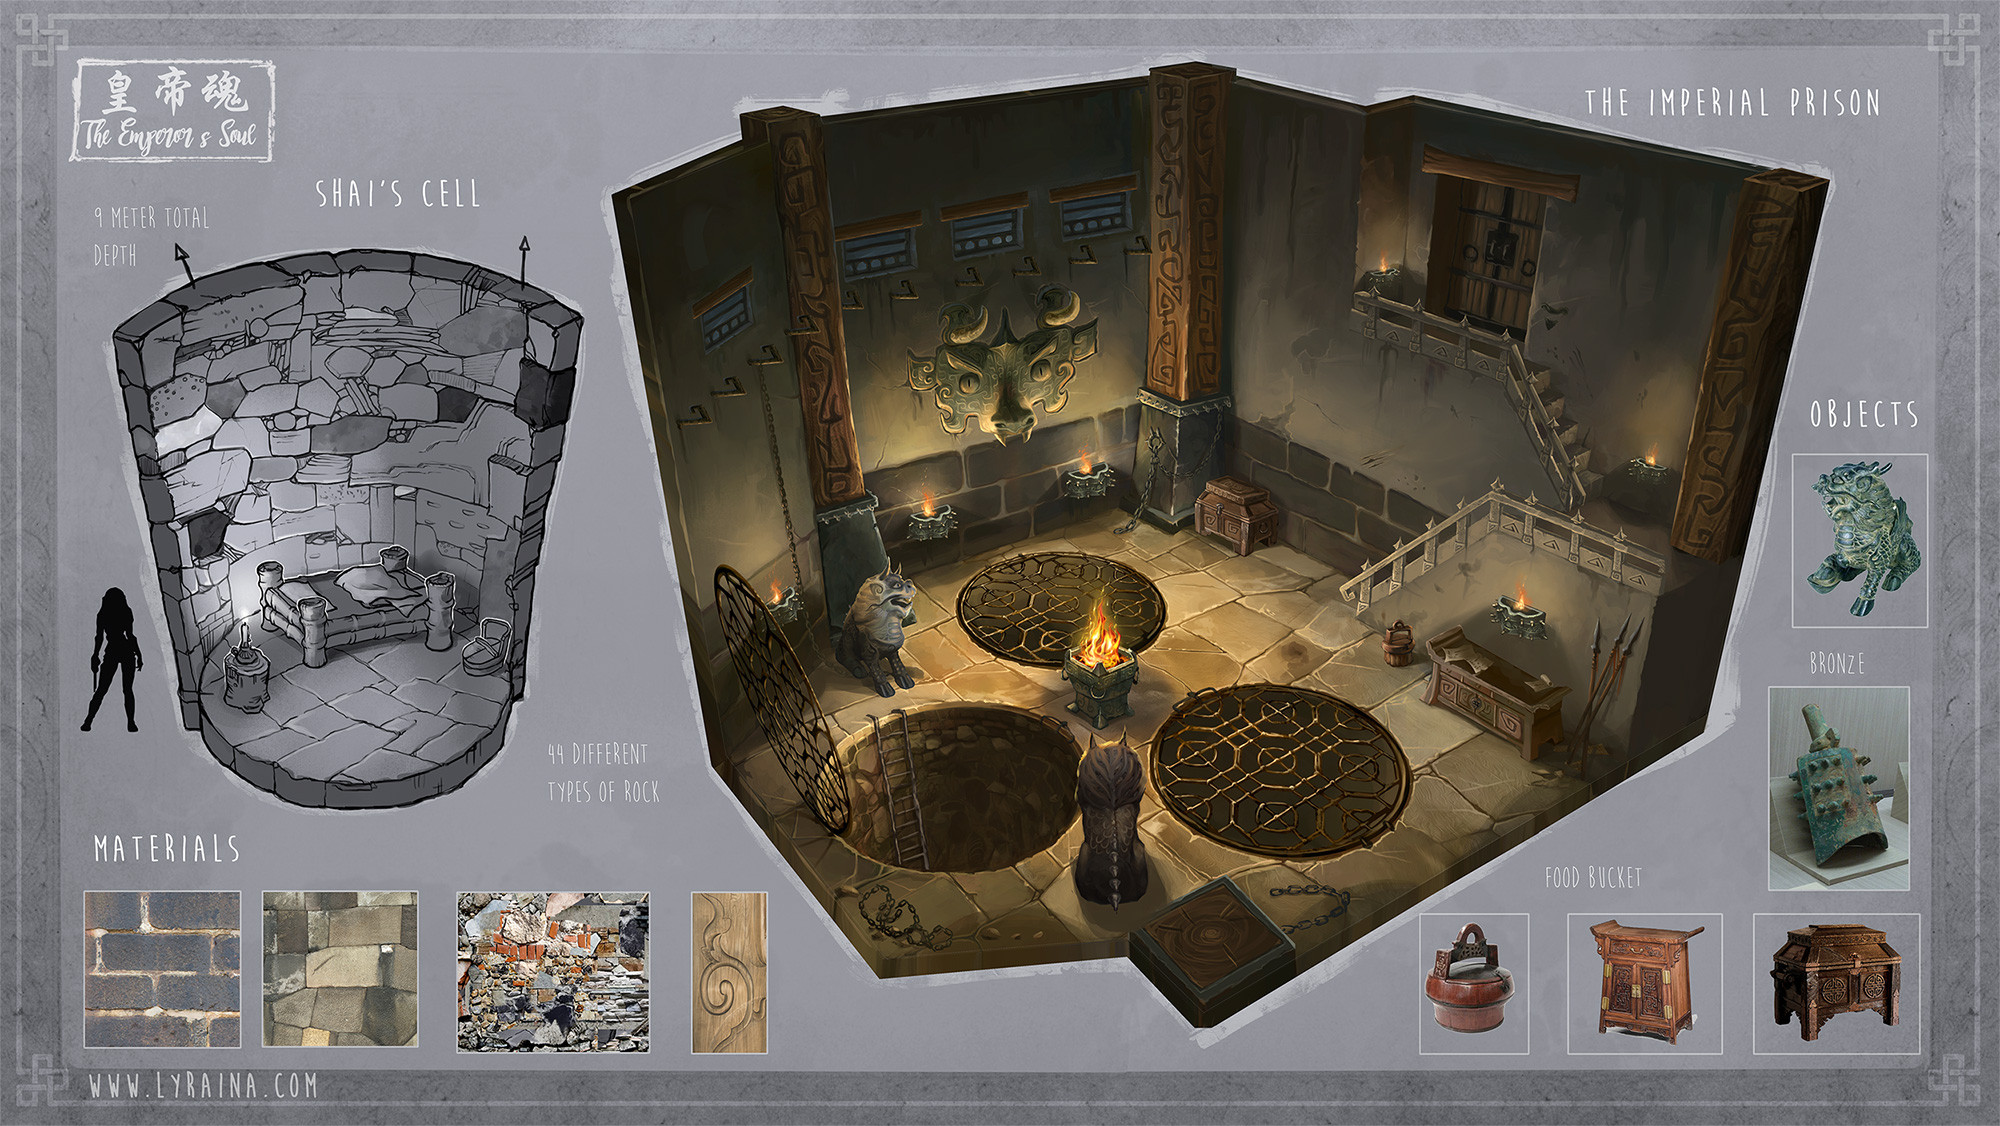 Shai's Prison cell - specifically designed to hold people with magical abilities like hers.